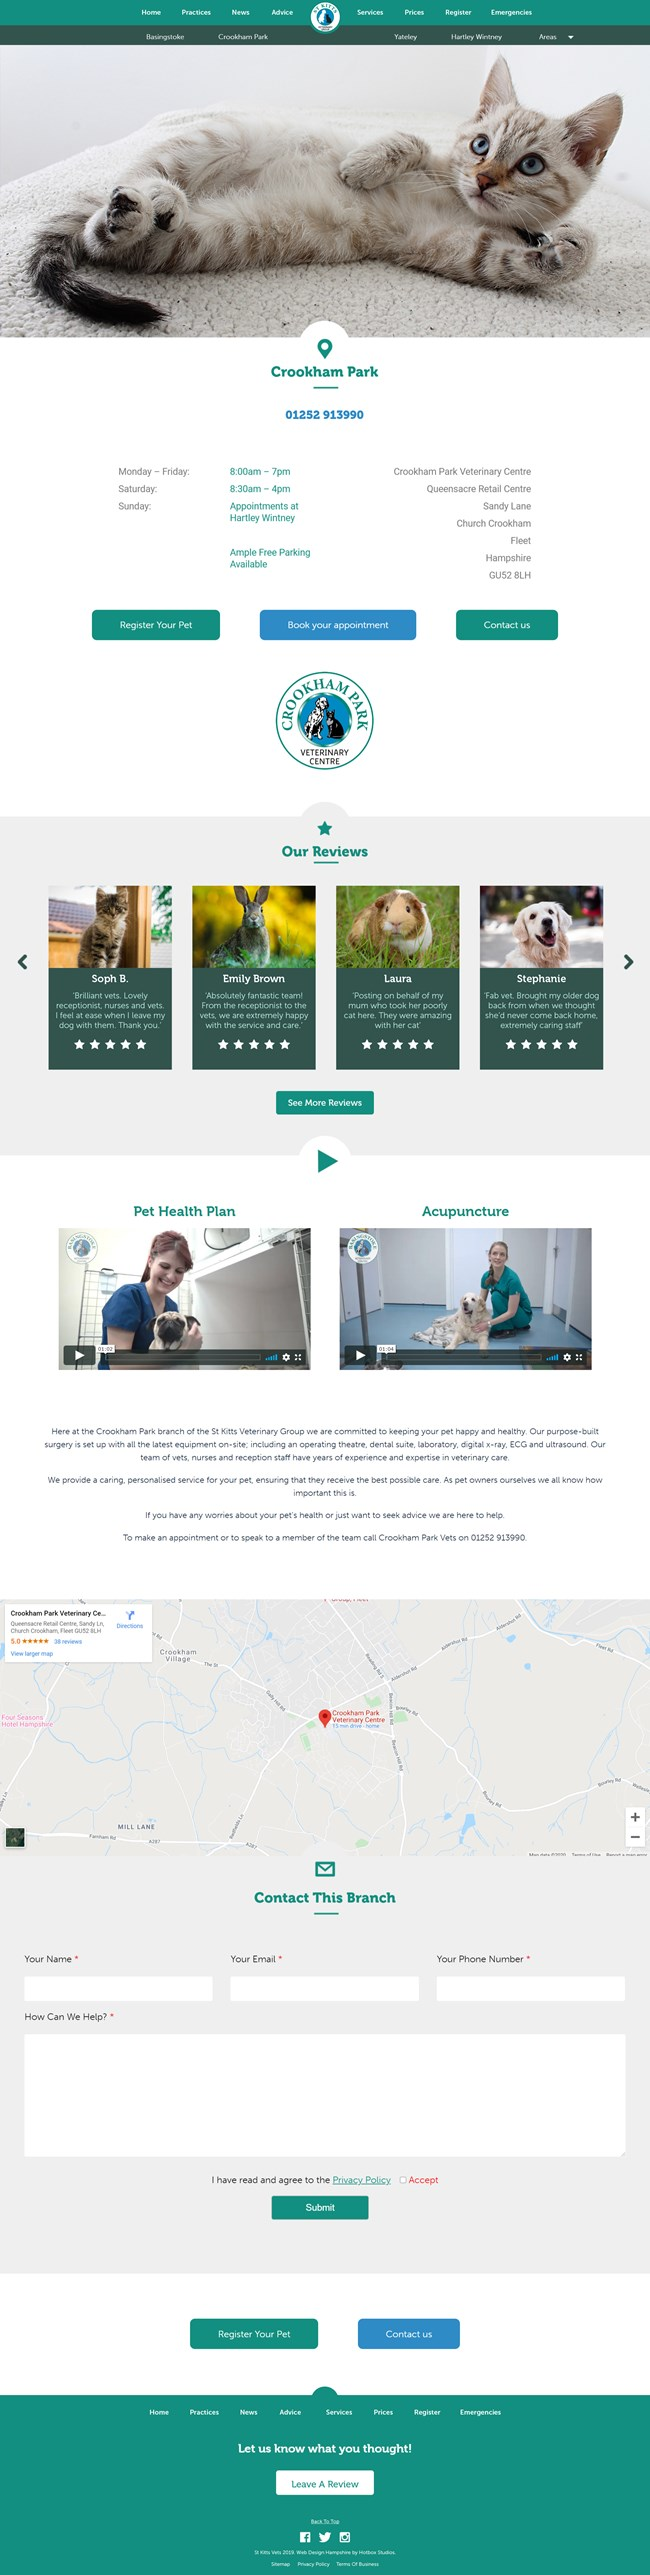 St Kitts Vet Website Design and WordPress Web Development SP005 Practices Church Crookham Vets